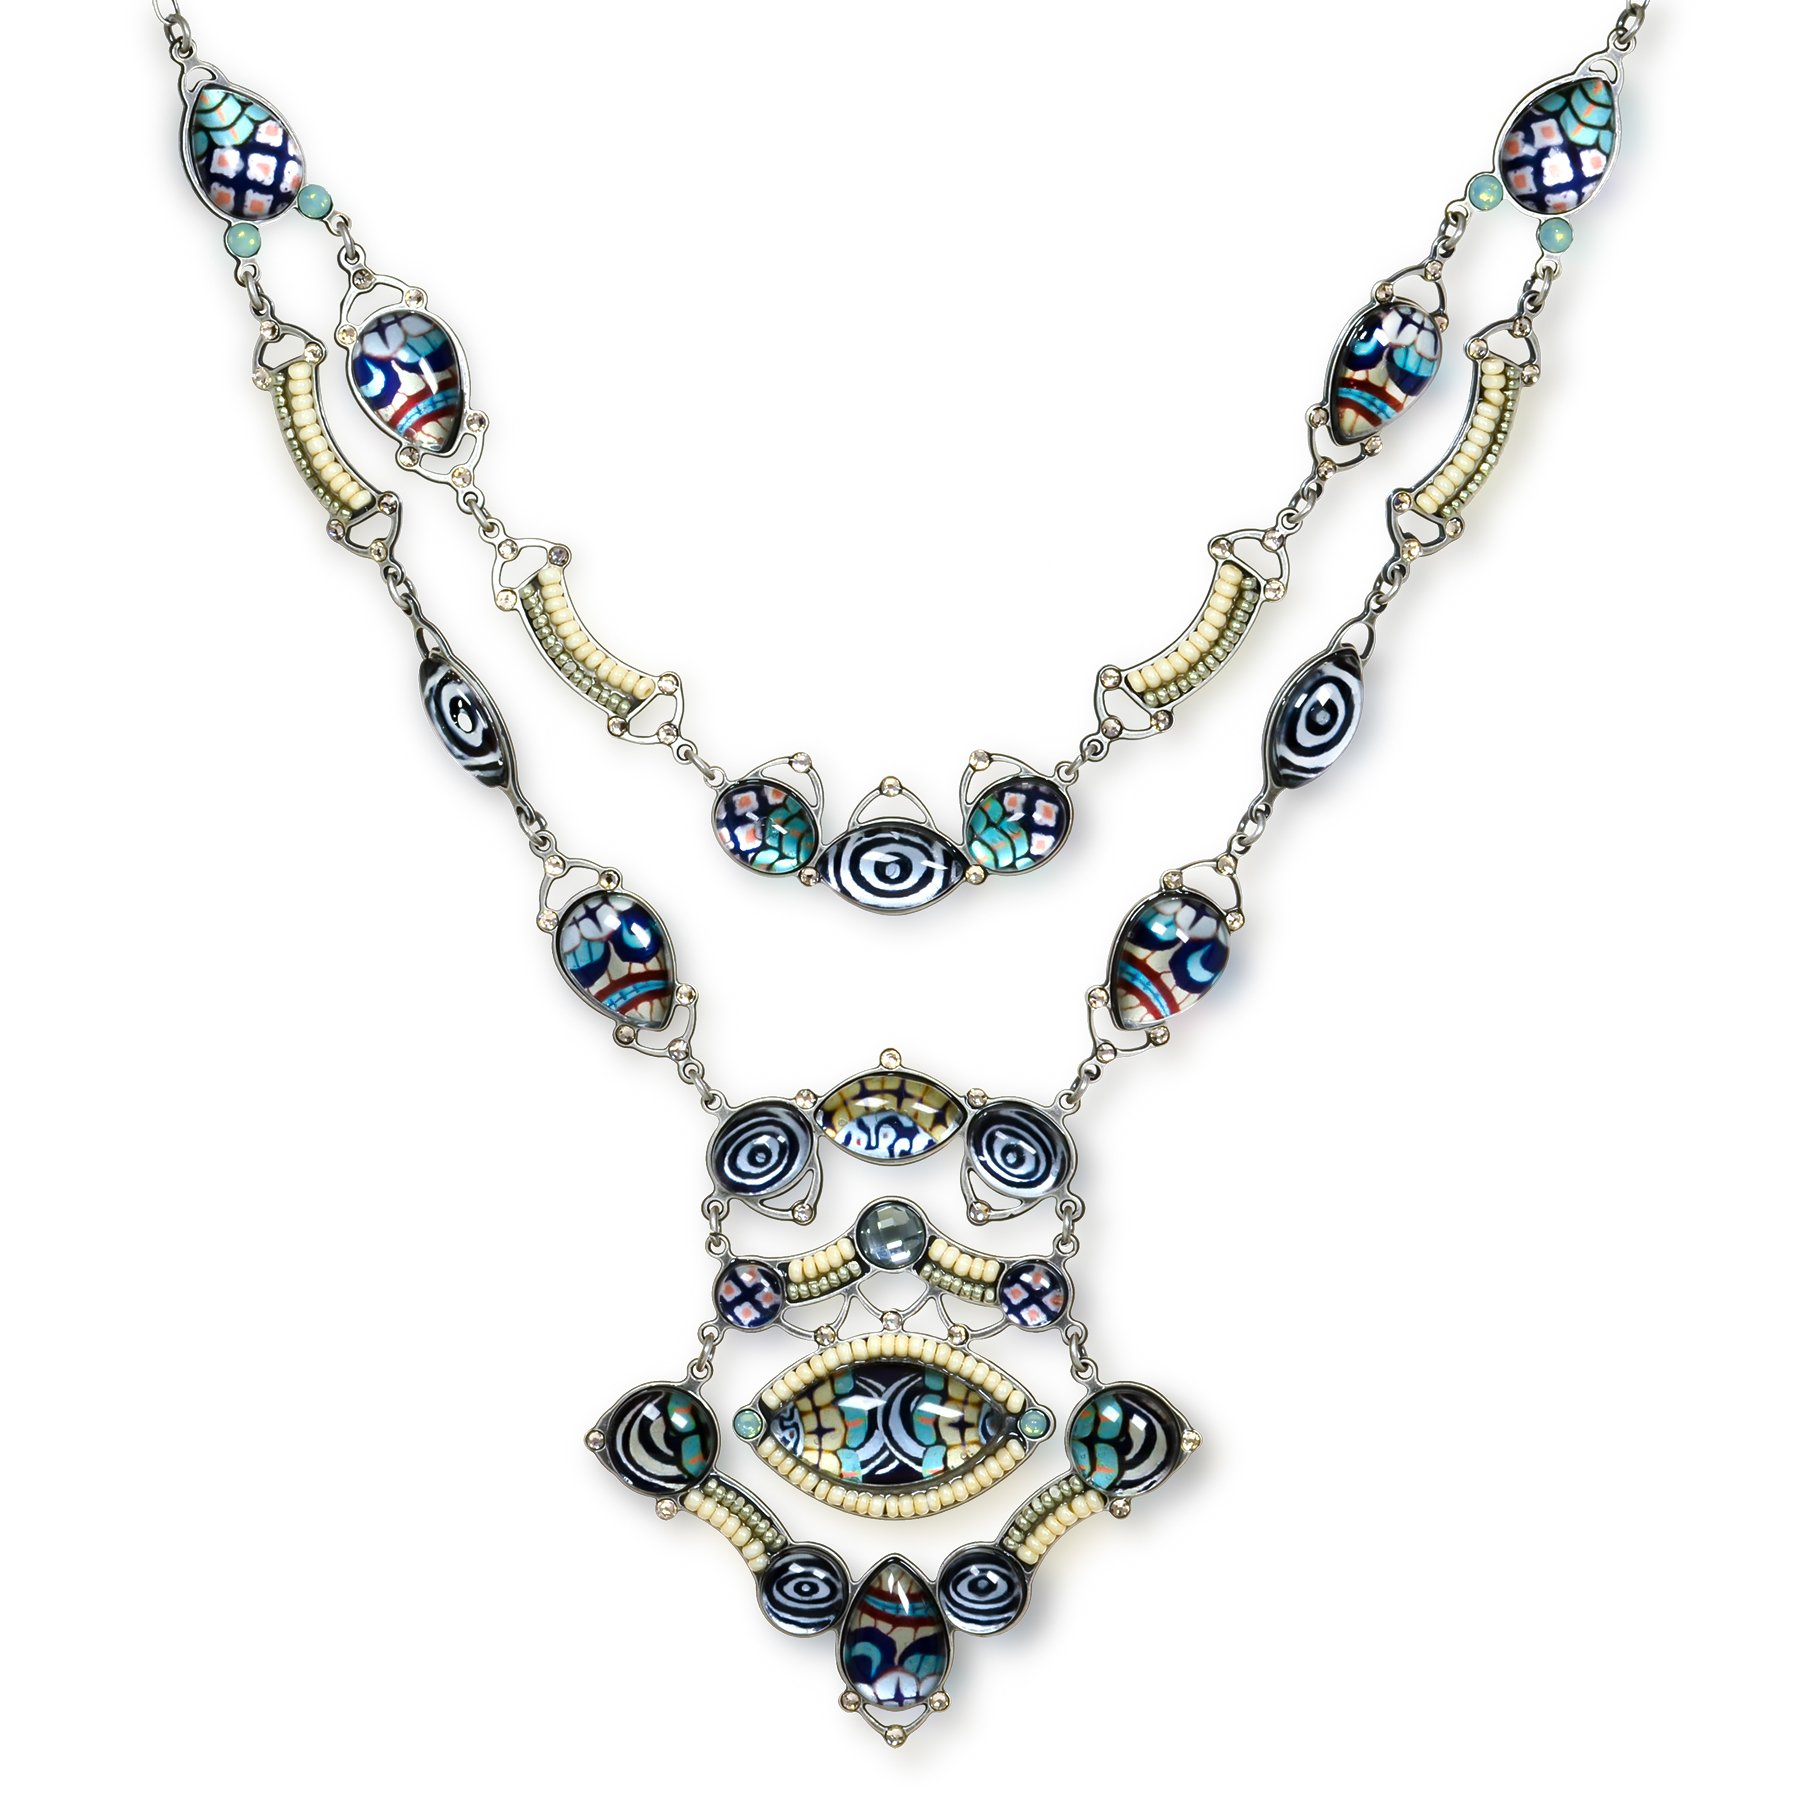 Bel-De-Jour Fashion Necklace, from the Artazia Spring-Summer Collection - N3610